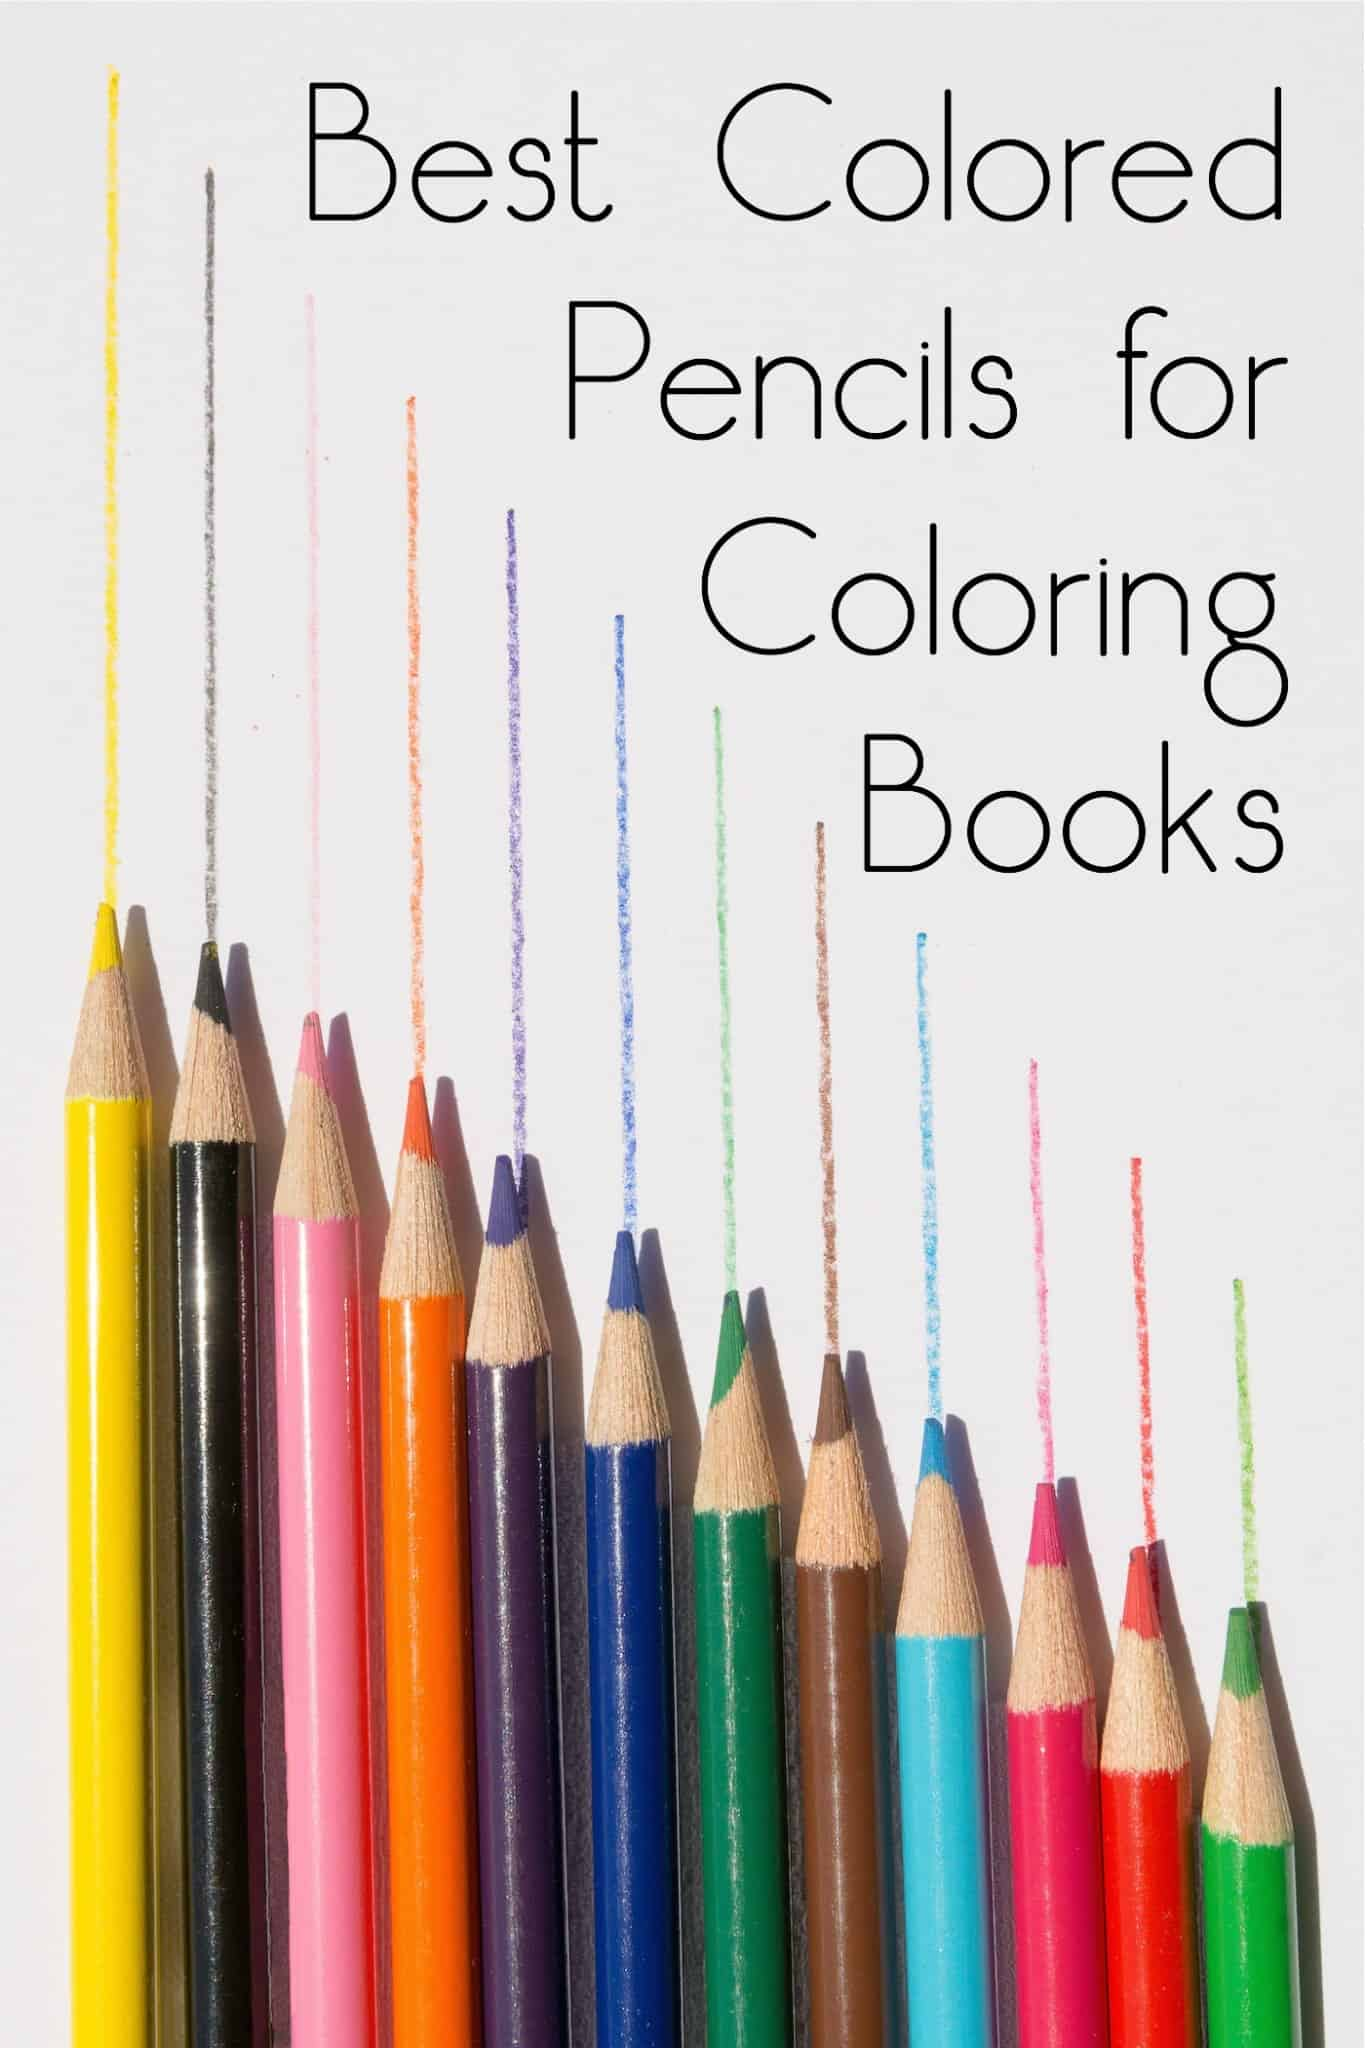 Best Colored Pencils for Coloring Books - diycandy.com